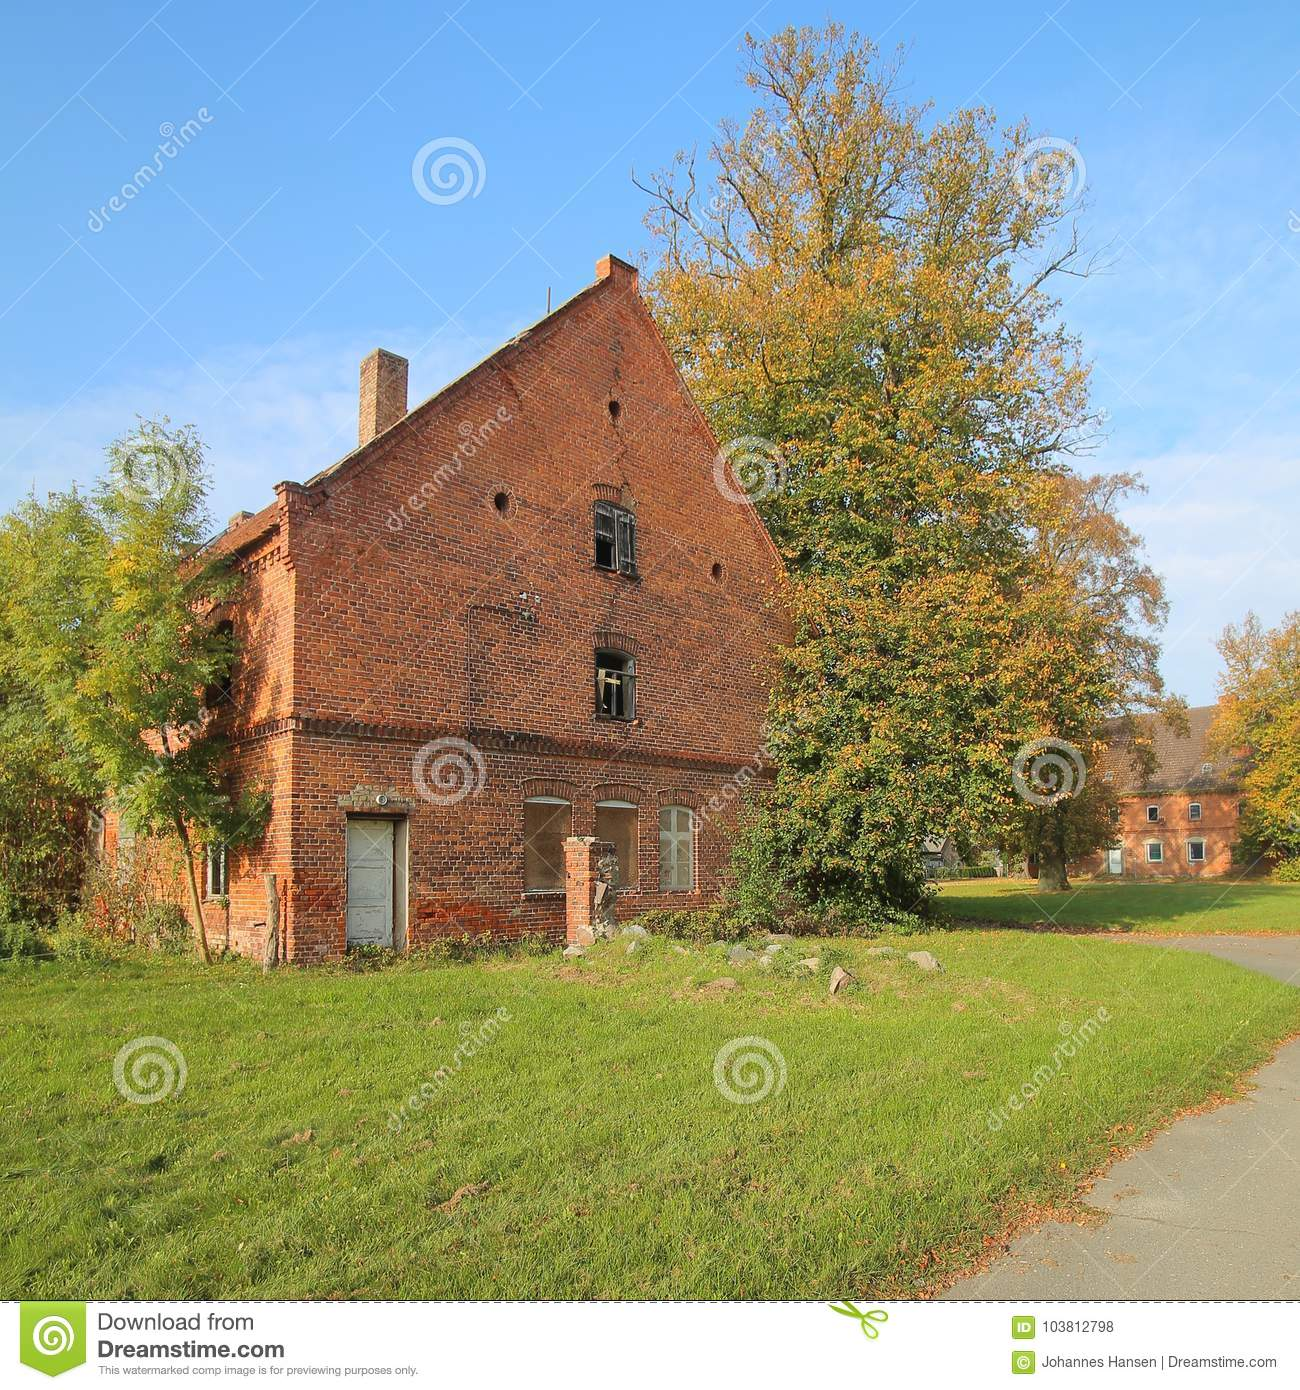 Ruin on historical manor grounds in Stilow, Mecklenburg-Vorpommern, Germany. The buildings are listed as monuments